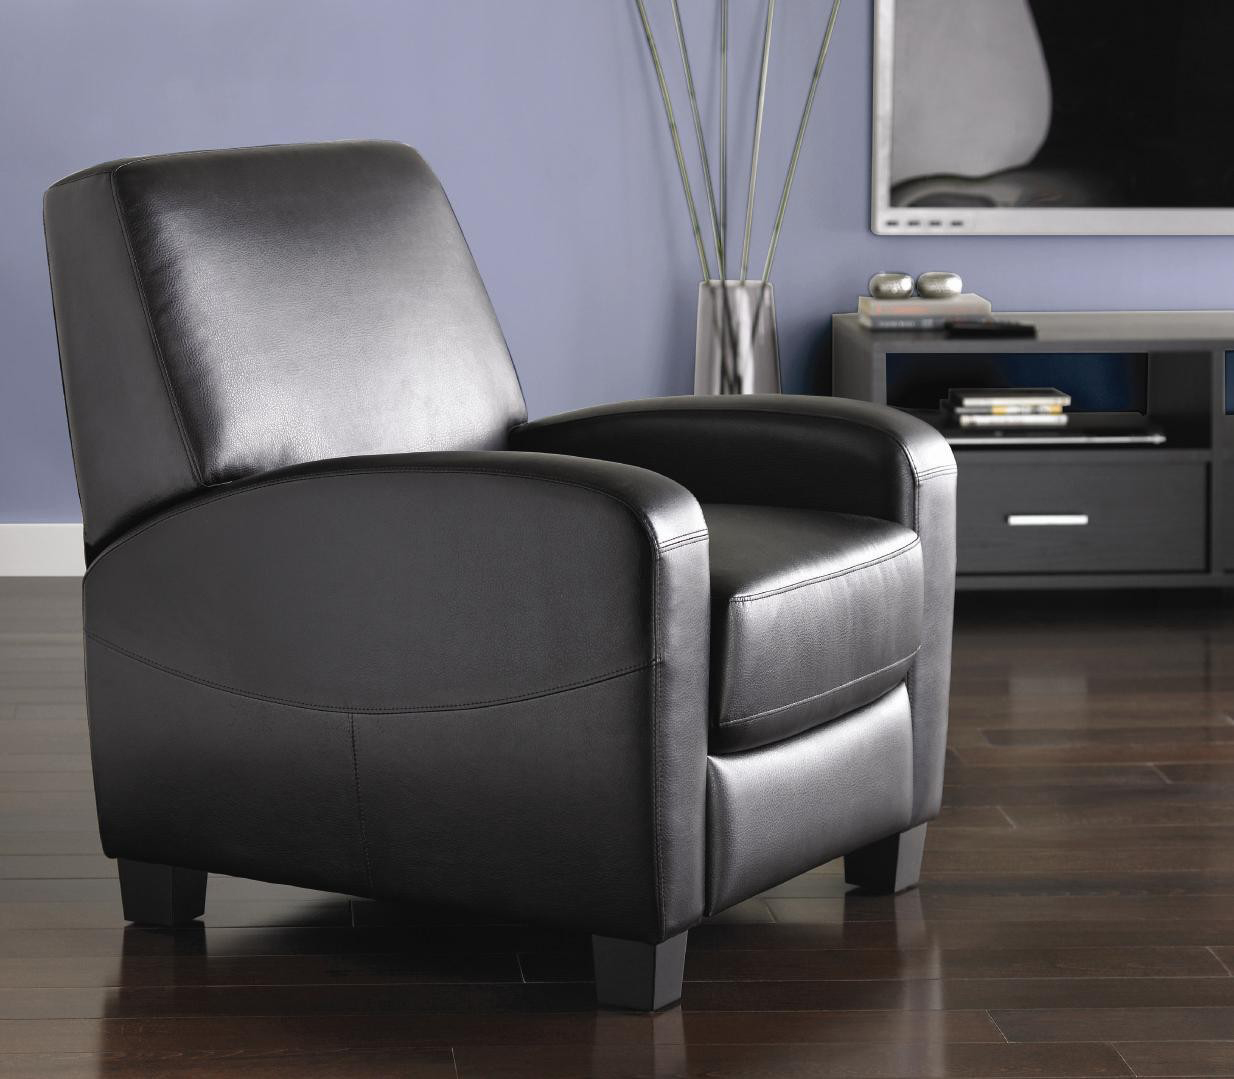 Mainstays Home Theater Recliner Multiple Colors & Recliners - Walmart.com islam-shia.org